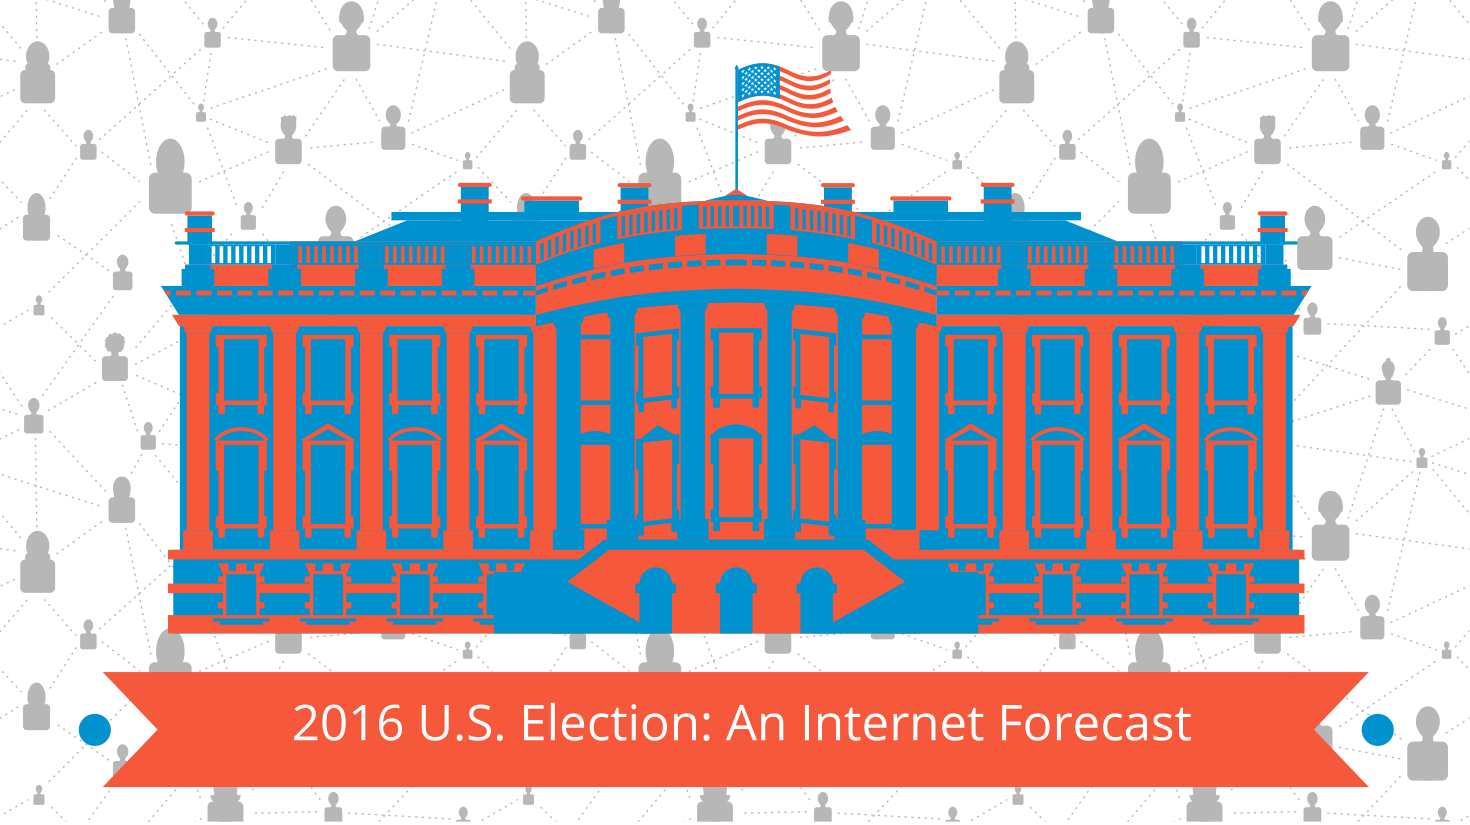 2016-u-s-election-an-internet-forecast